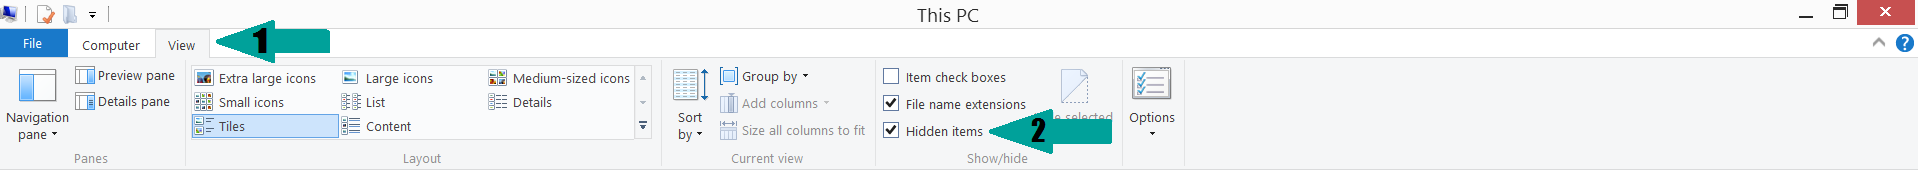 show-hidden-files-win8-10